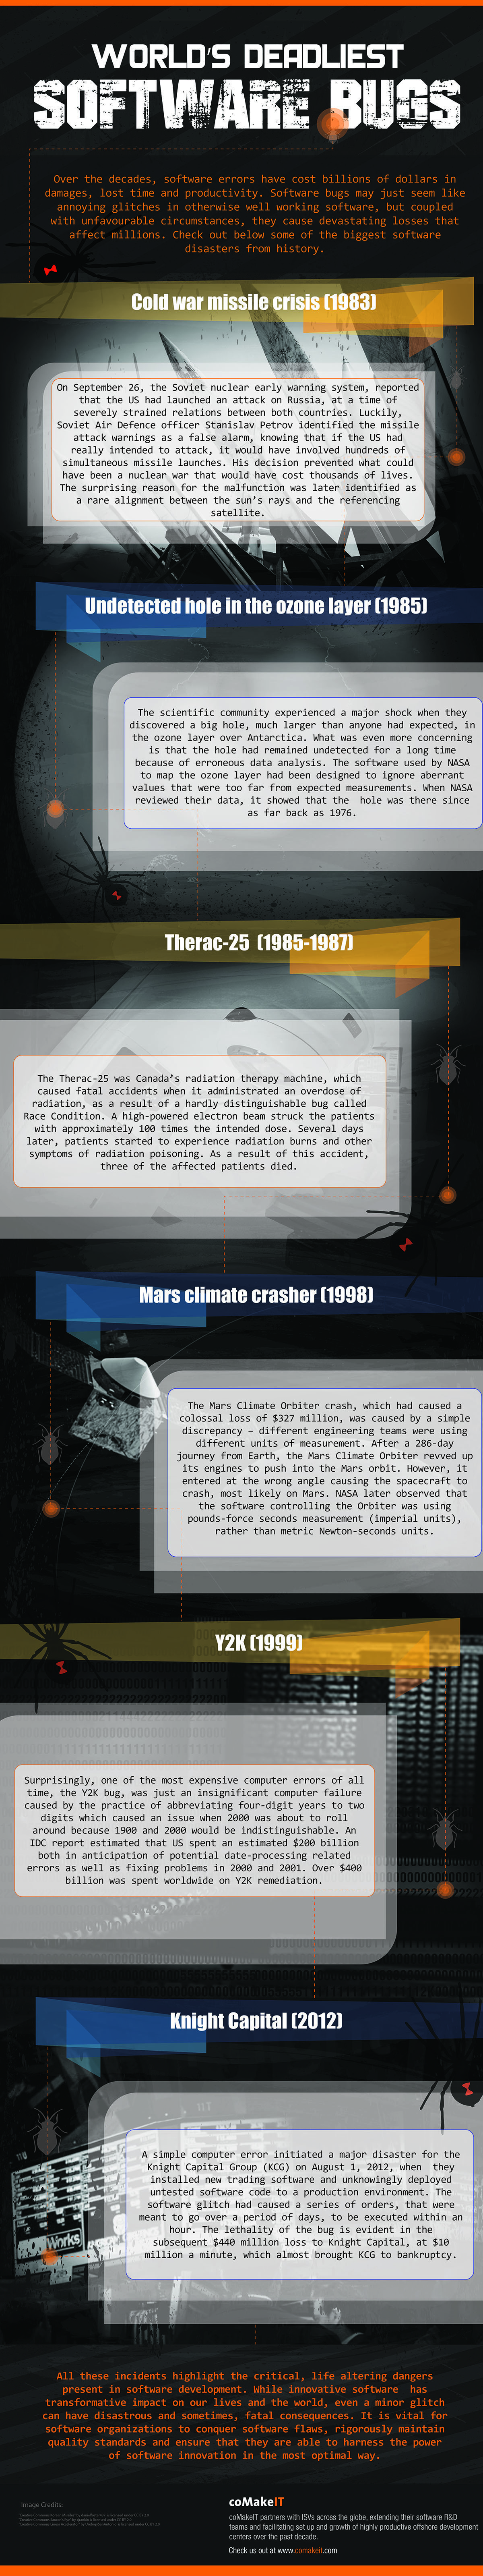 Software_bugs_infographic_final